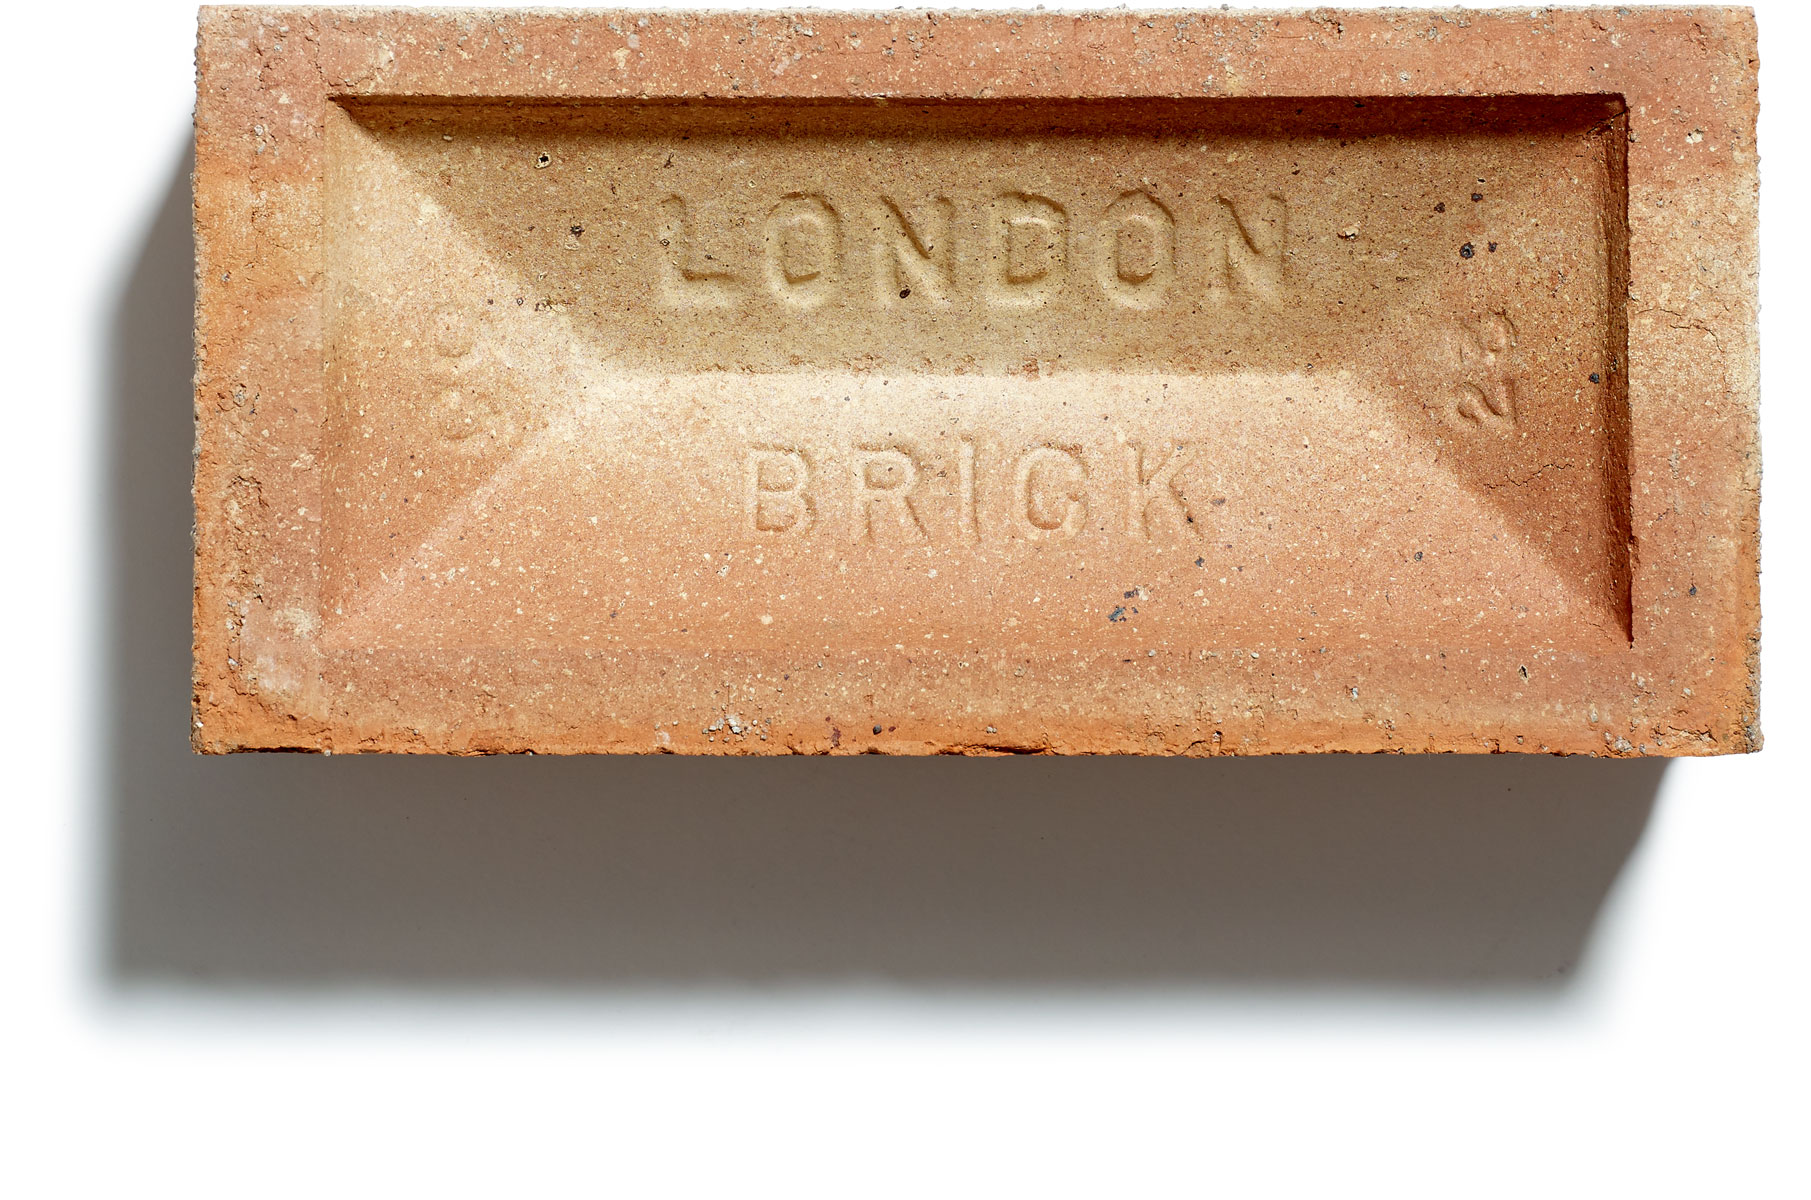 Bricks, Jonathan Ellery, 2017